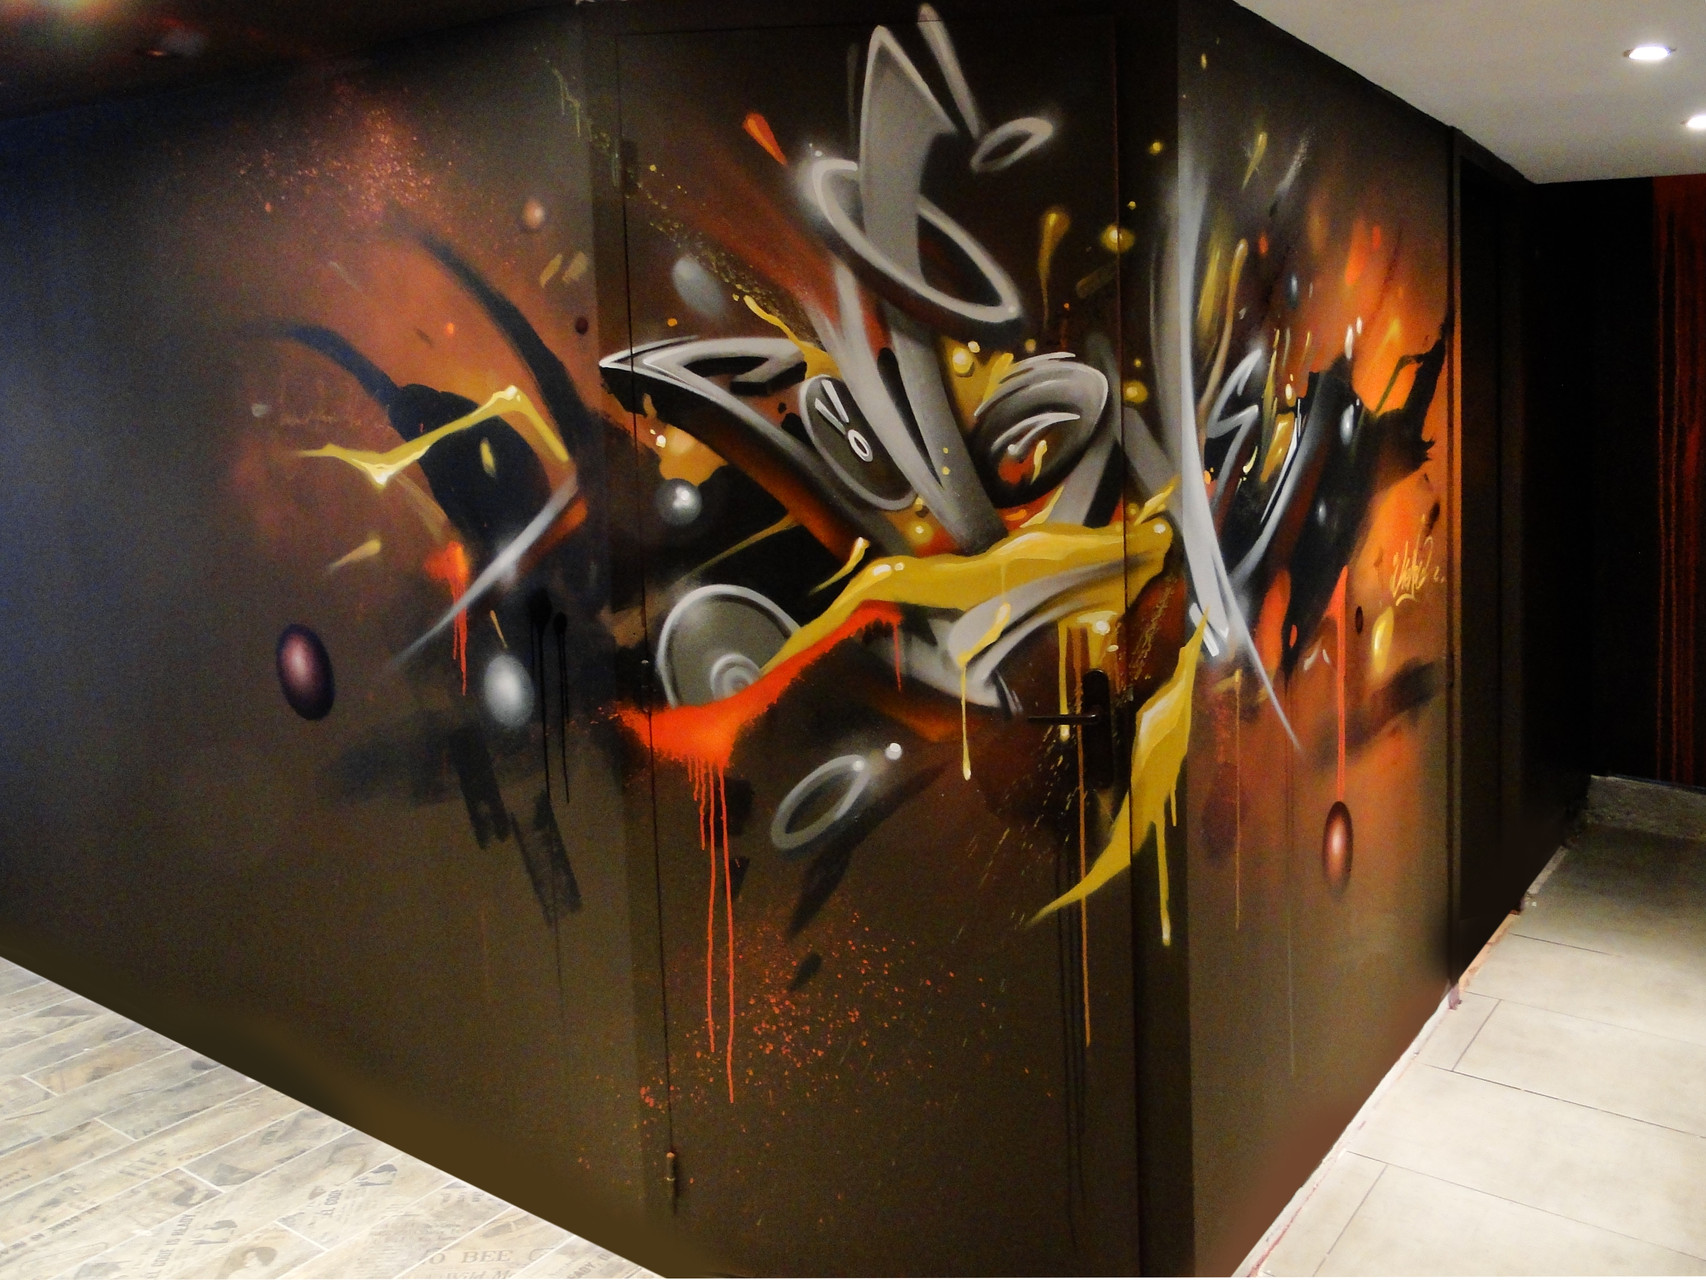 Graffiti, nebula, Bayonne, design, art.